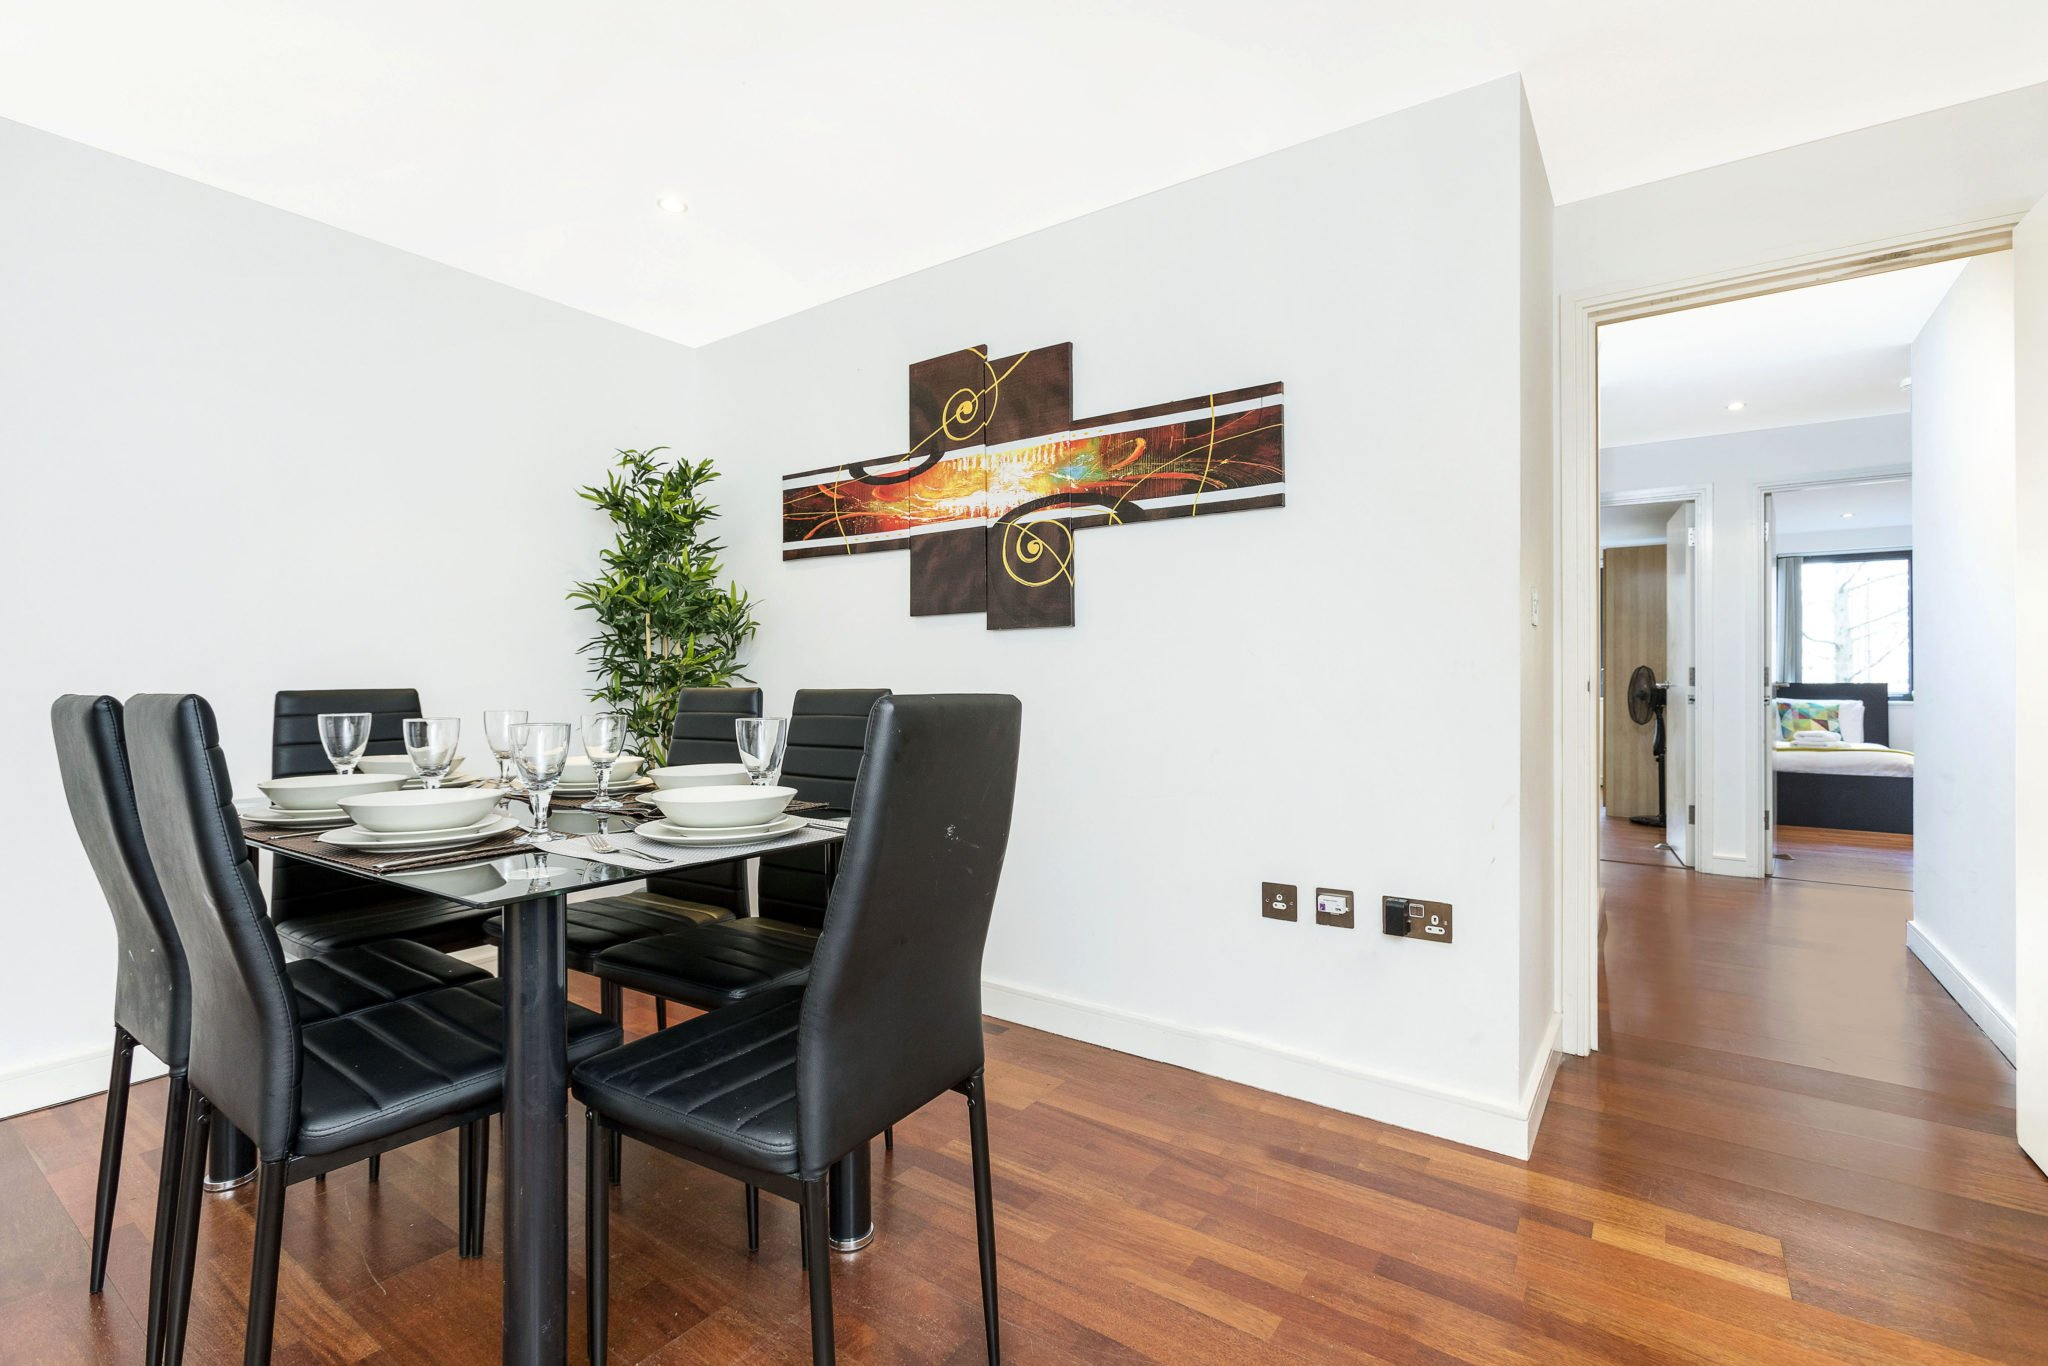 Looking-for-affordable-apartments-in-London-Euston?-why-not-book-our-lovely-Euston-Serviced-Apartment-at-William-Road.-Call-us-today-for-great-rates.